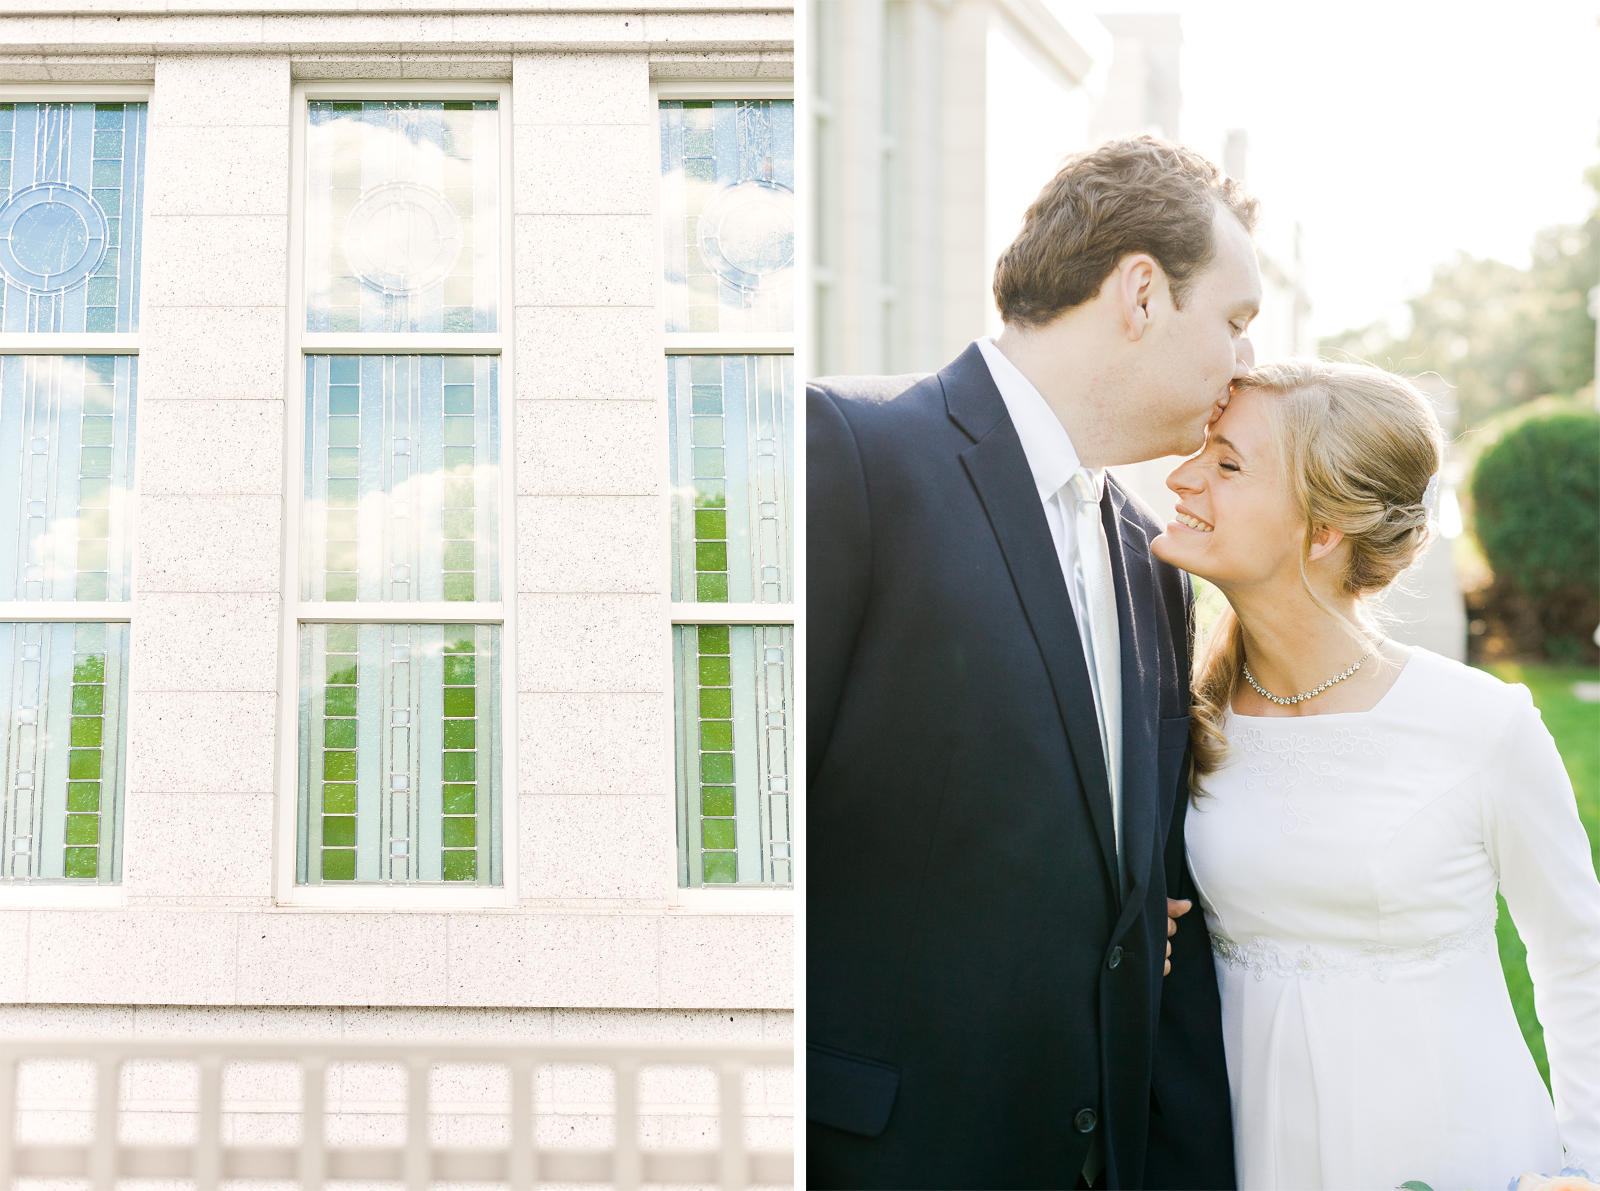 st_paul_lds_temple_wedding_004.jpg